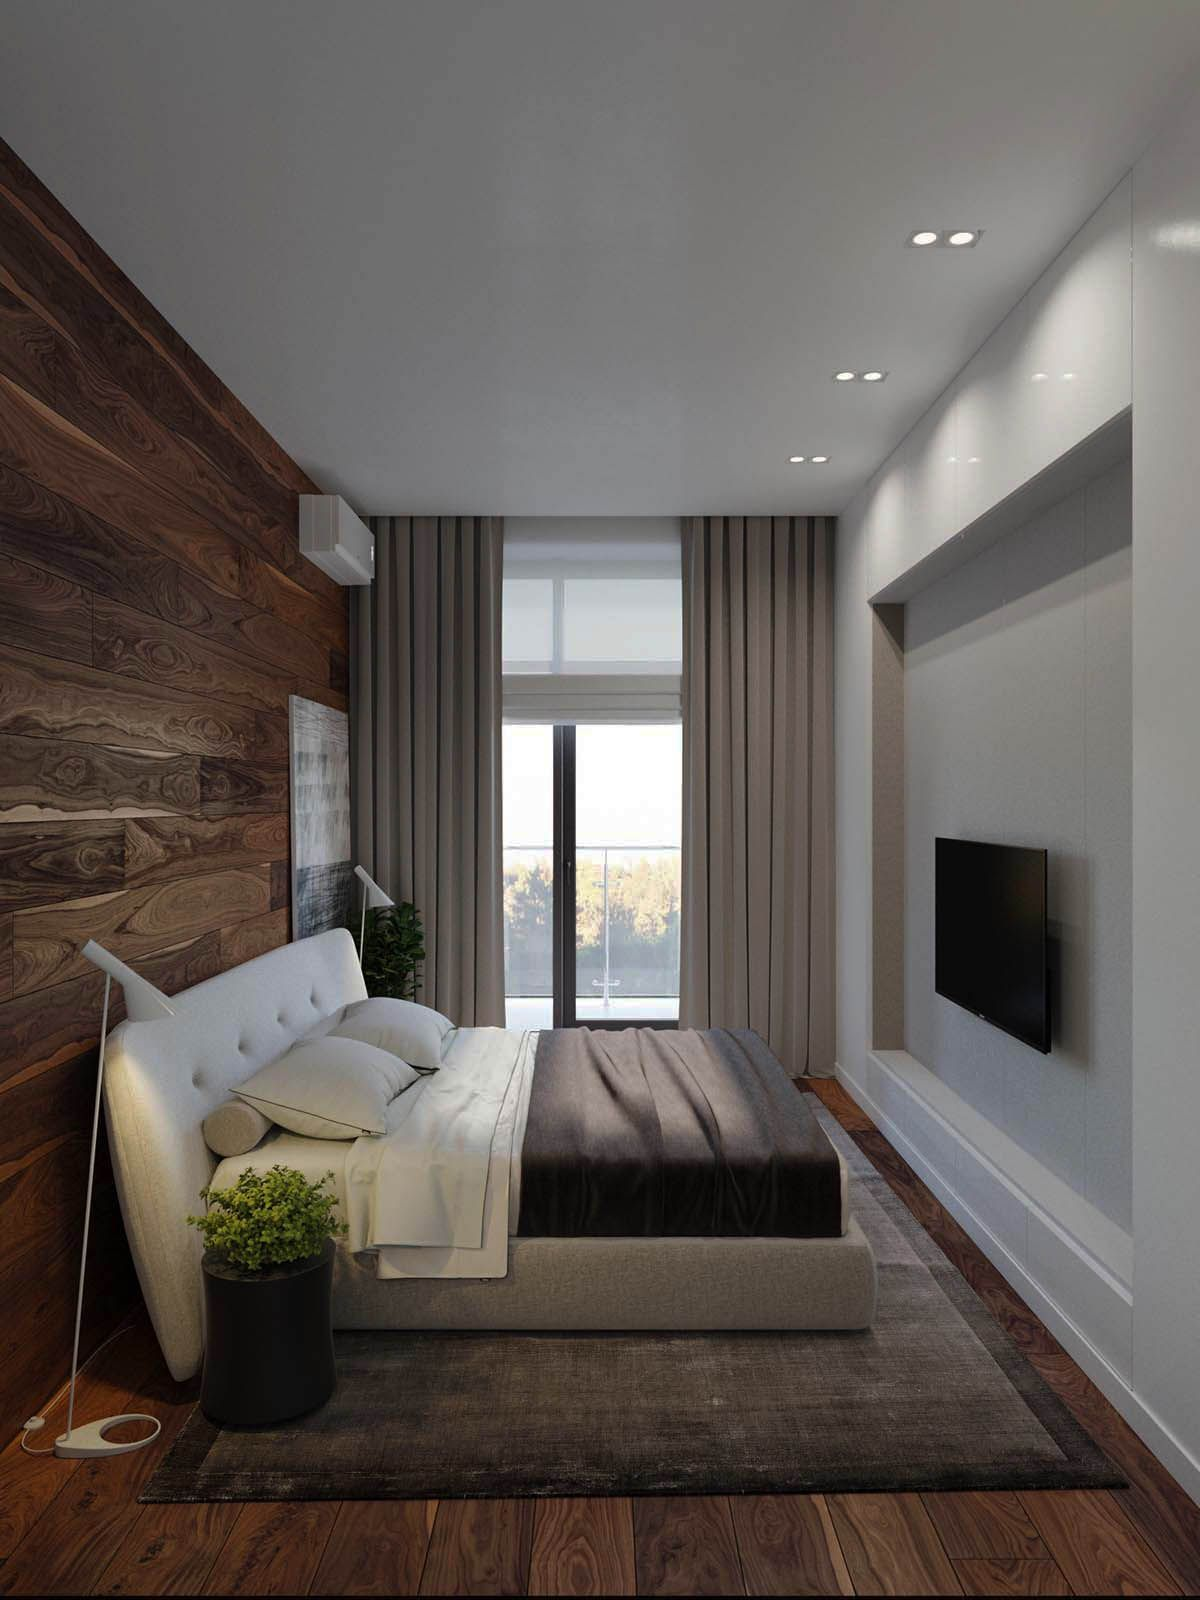 Little Center Apartment Layout Concepts 2019 Modern Tiny